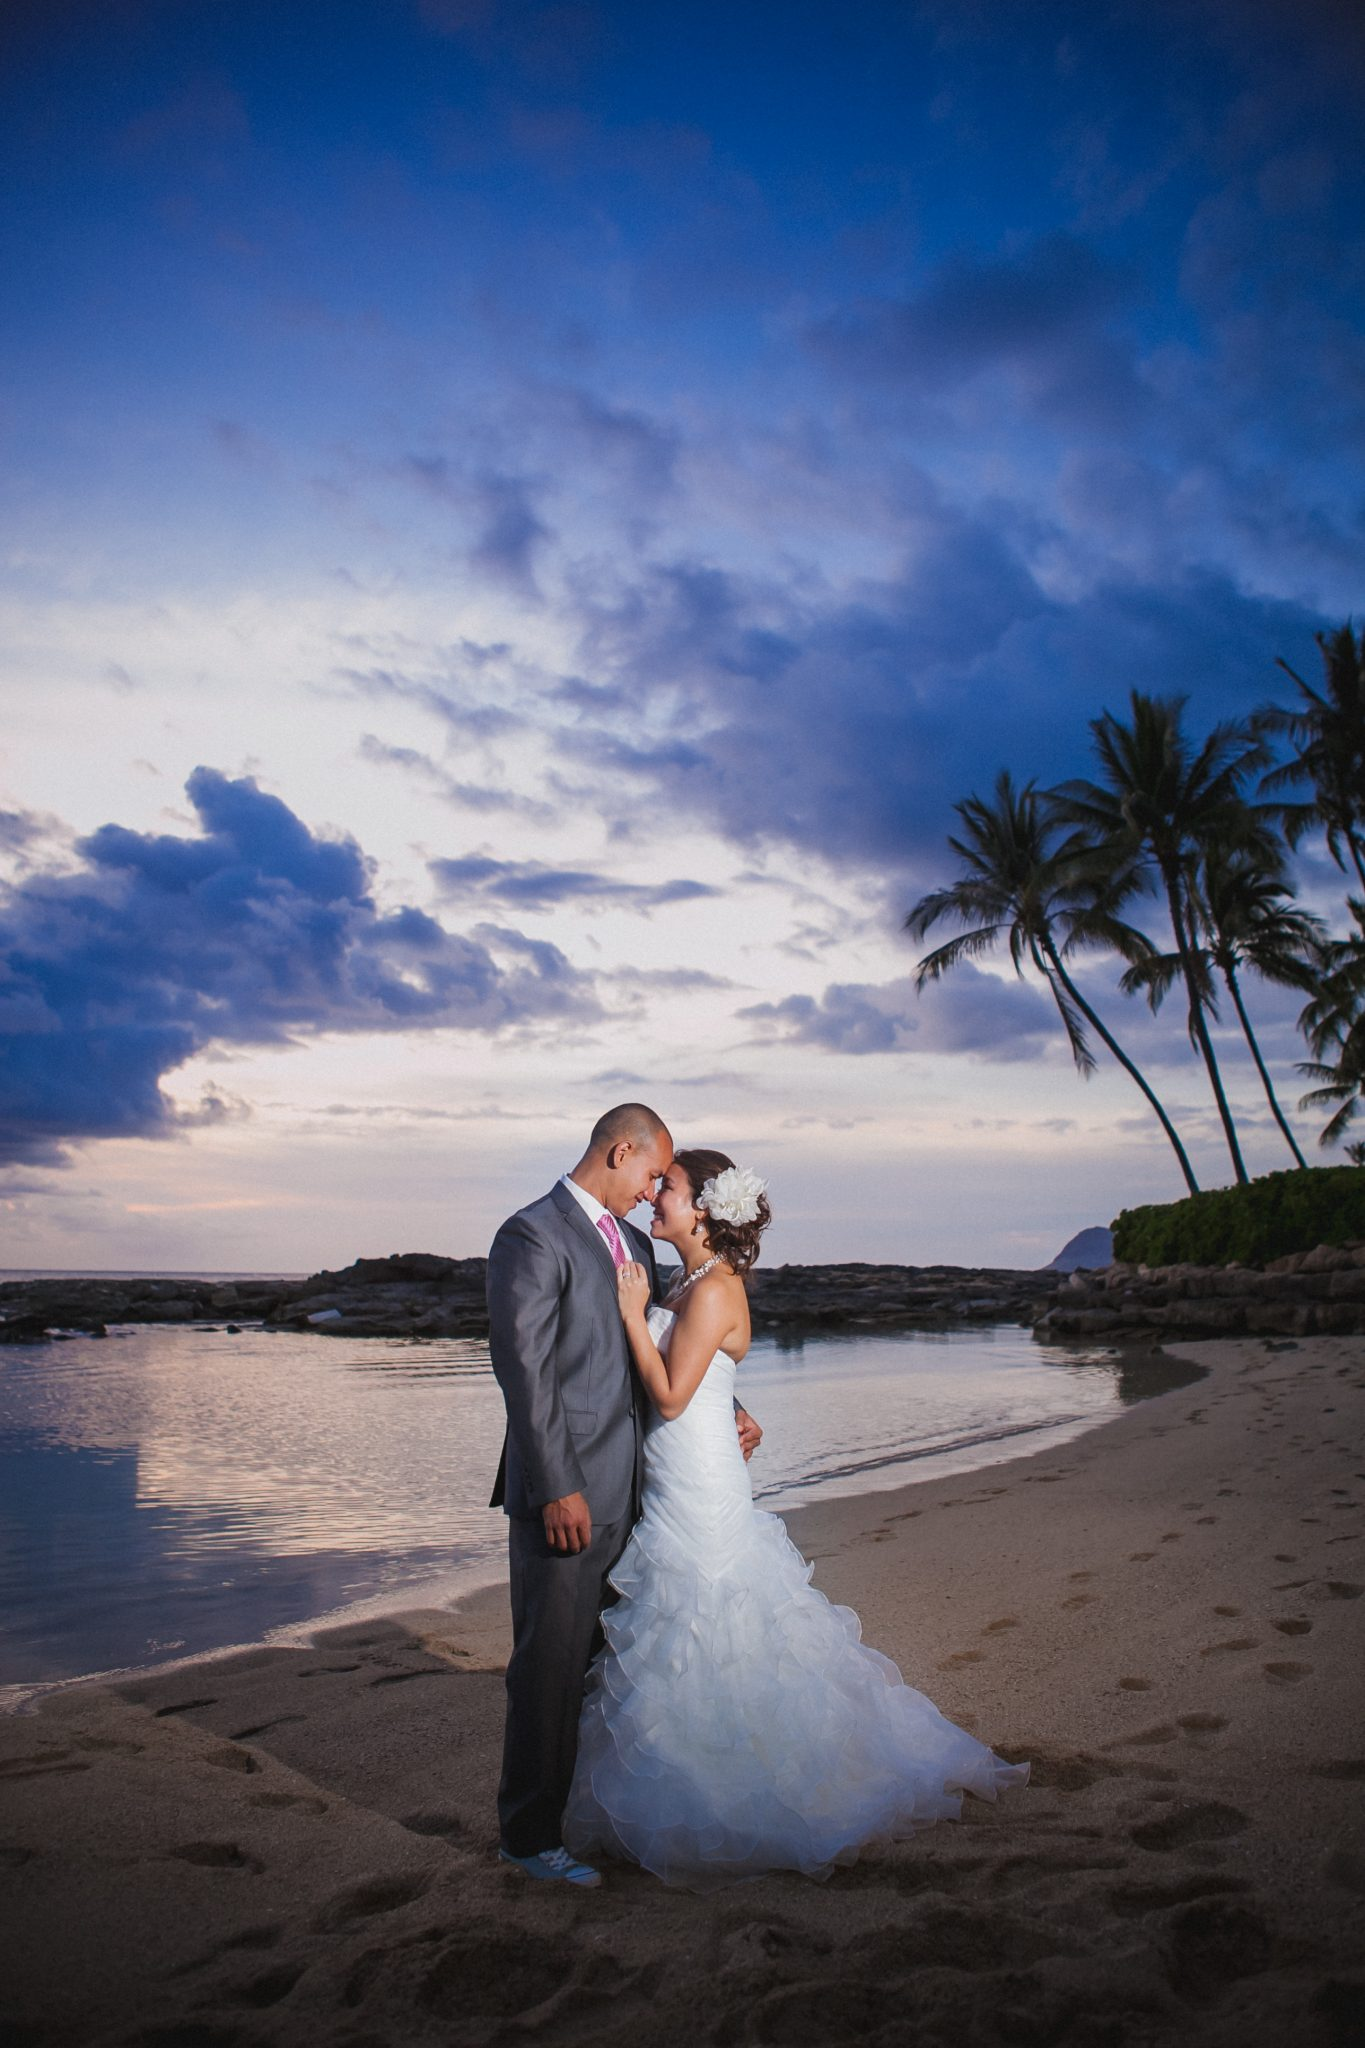 Hawaiian sunset in the background of a couple portrait